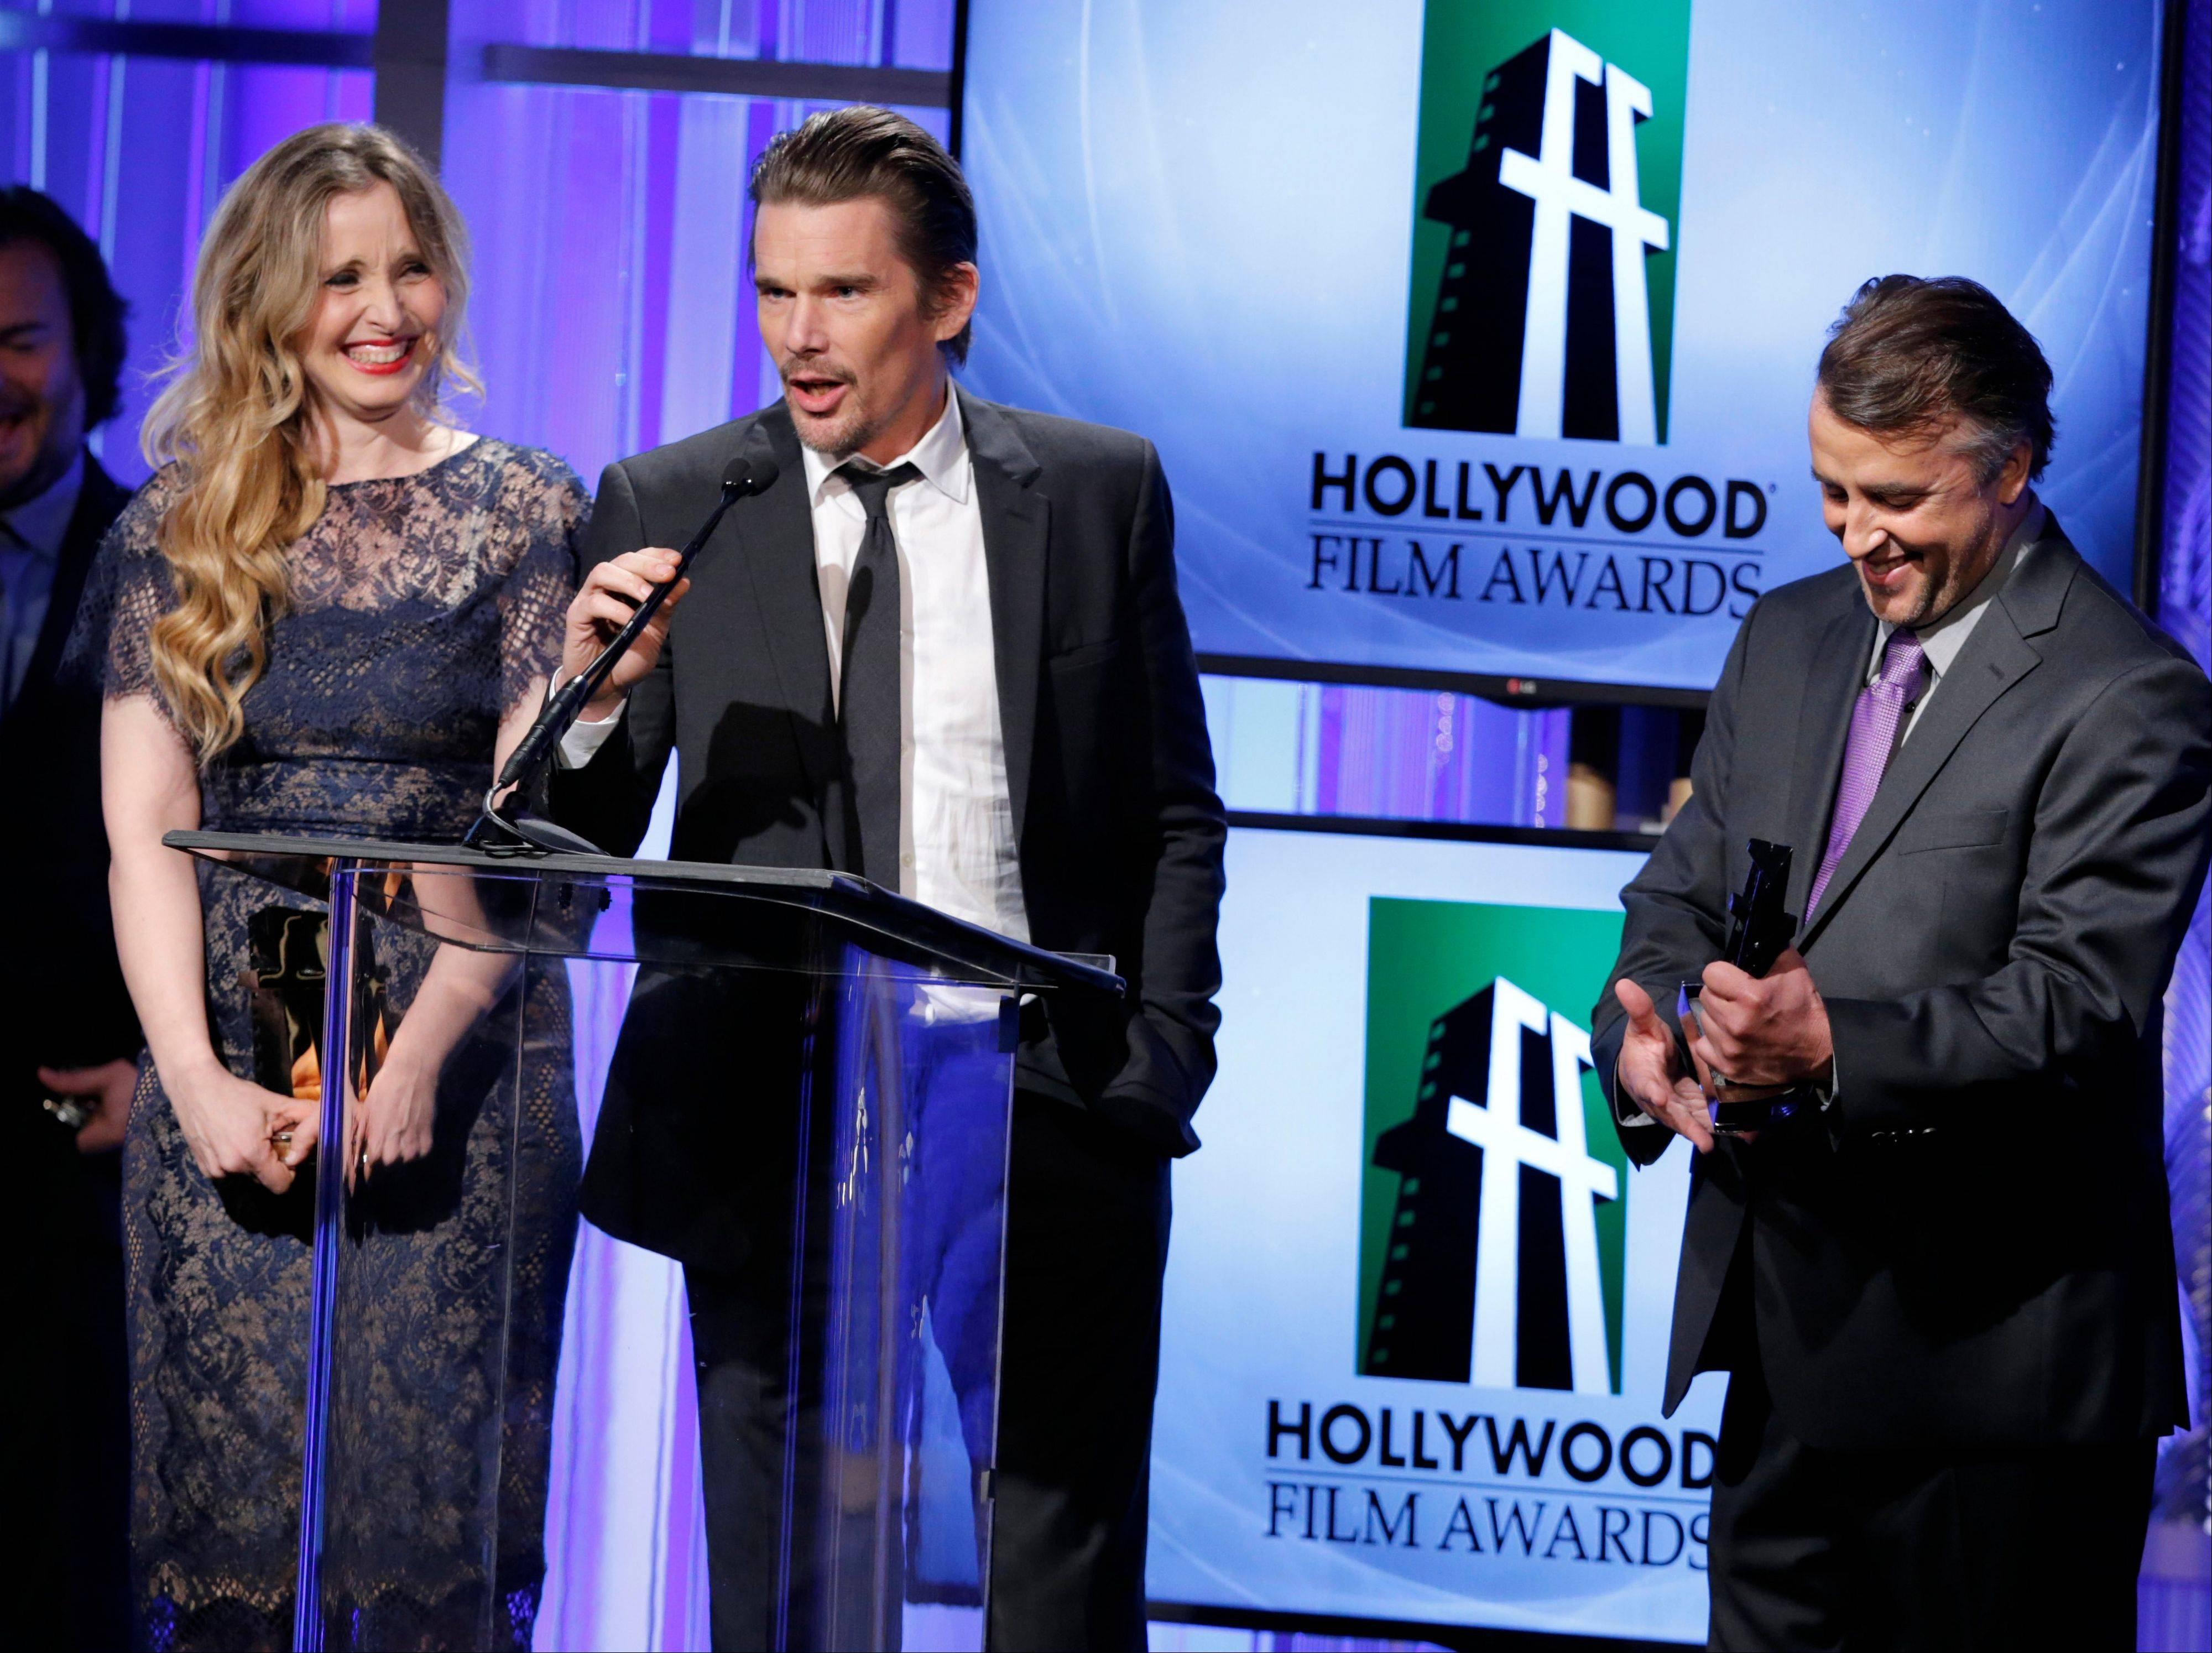 Julie Delpy, left, Ethan Hawke and Richard Linklater accept the Hollywood screenwriter award at the 17th Annual Hollywood Film Awards Gala Monday.